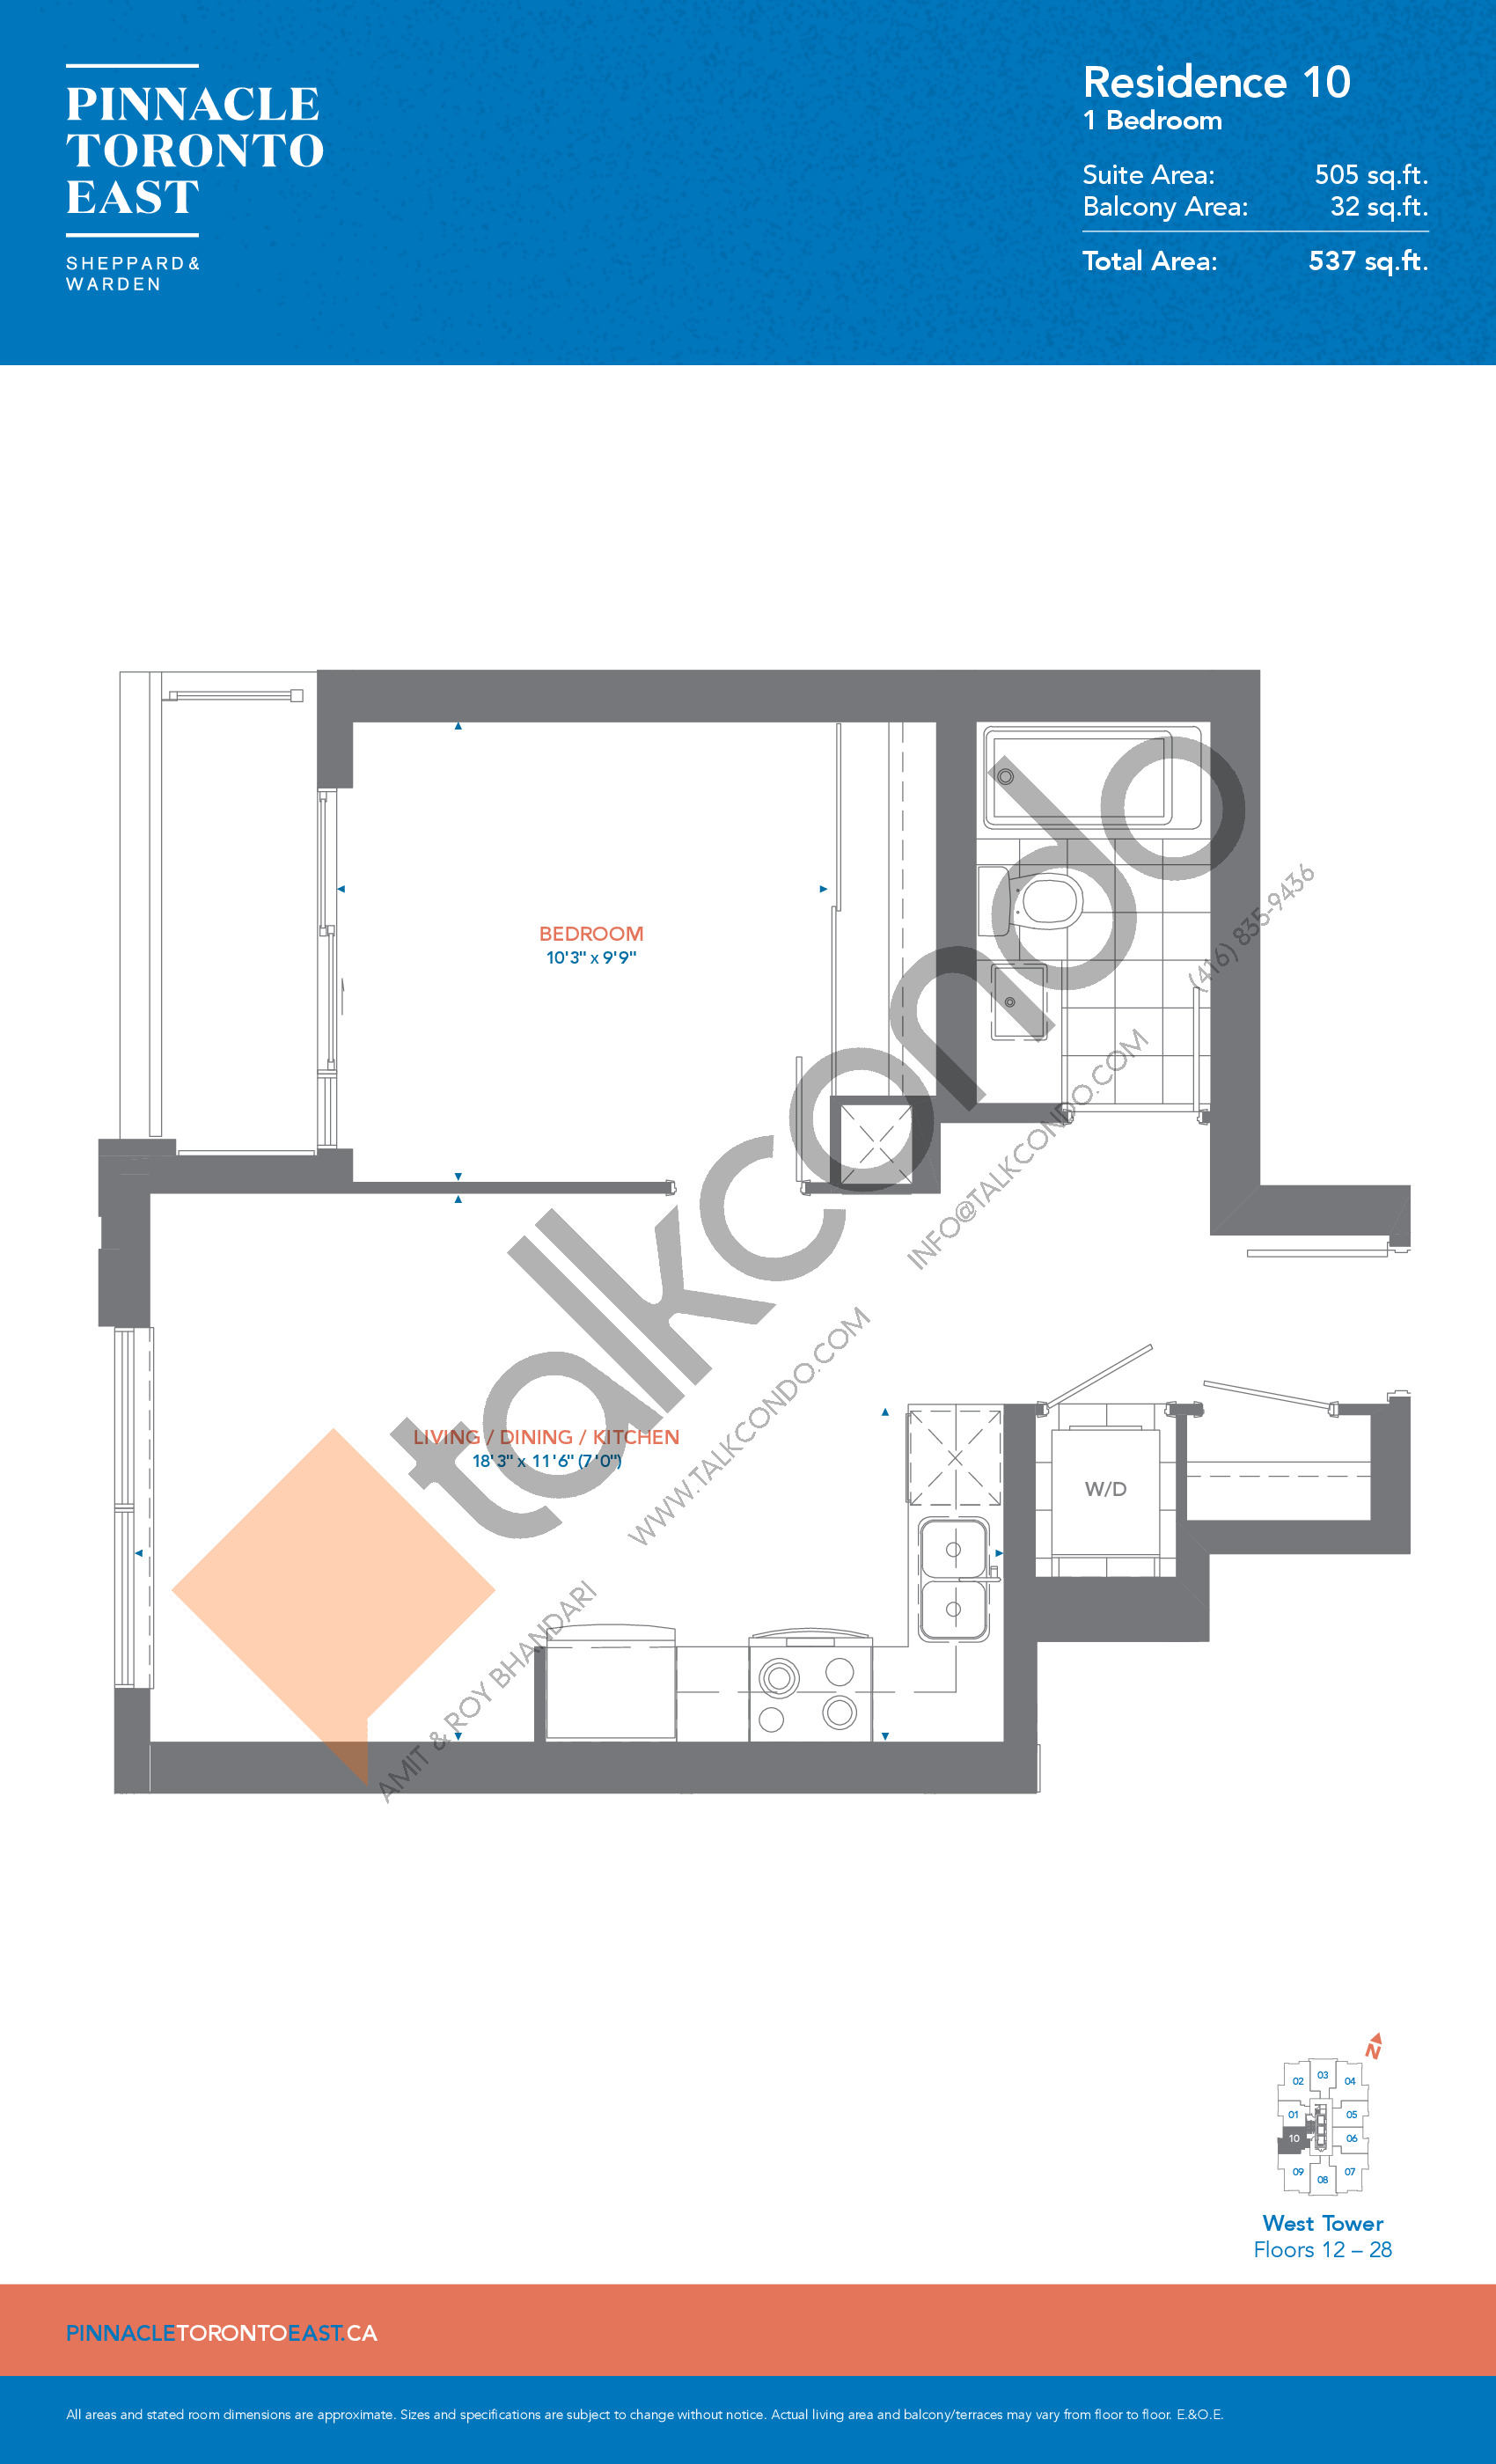 Residence 10 - West Tower Floor Plan at Pinnacle Toronto East Condos - 505 sq.ft